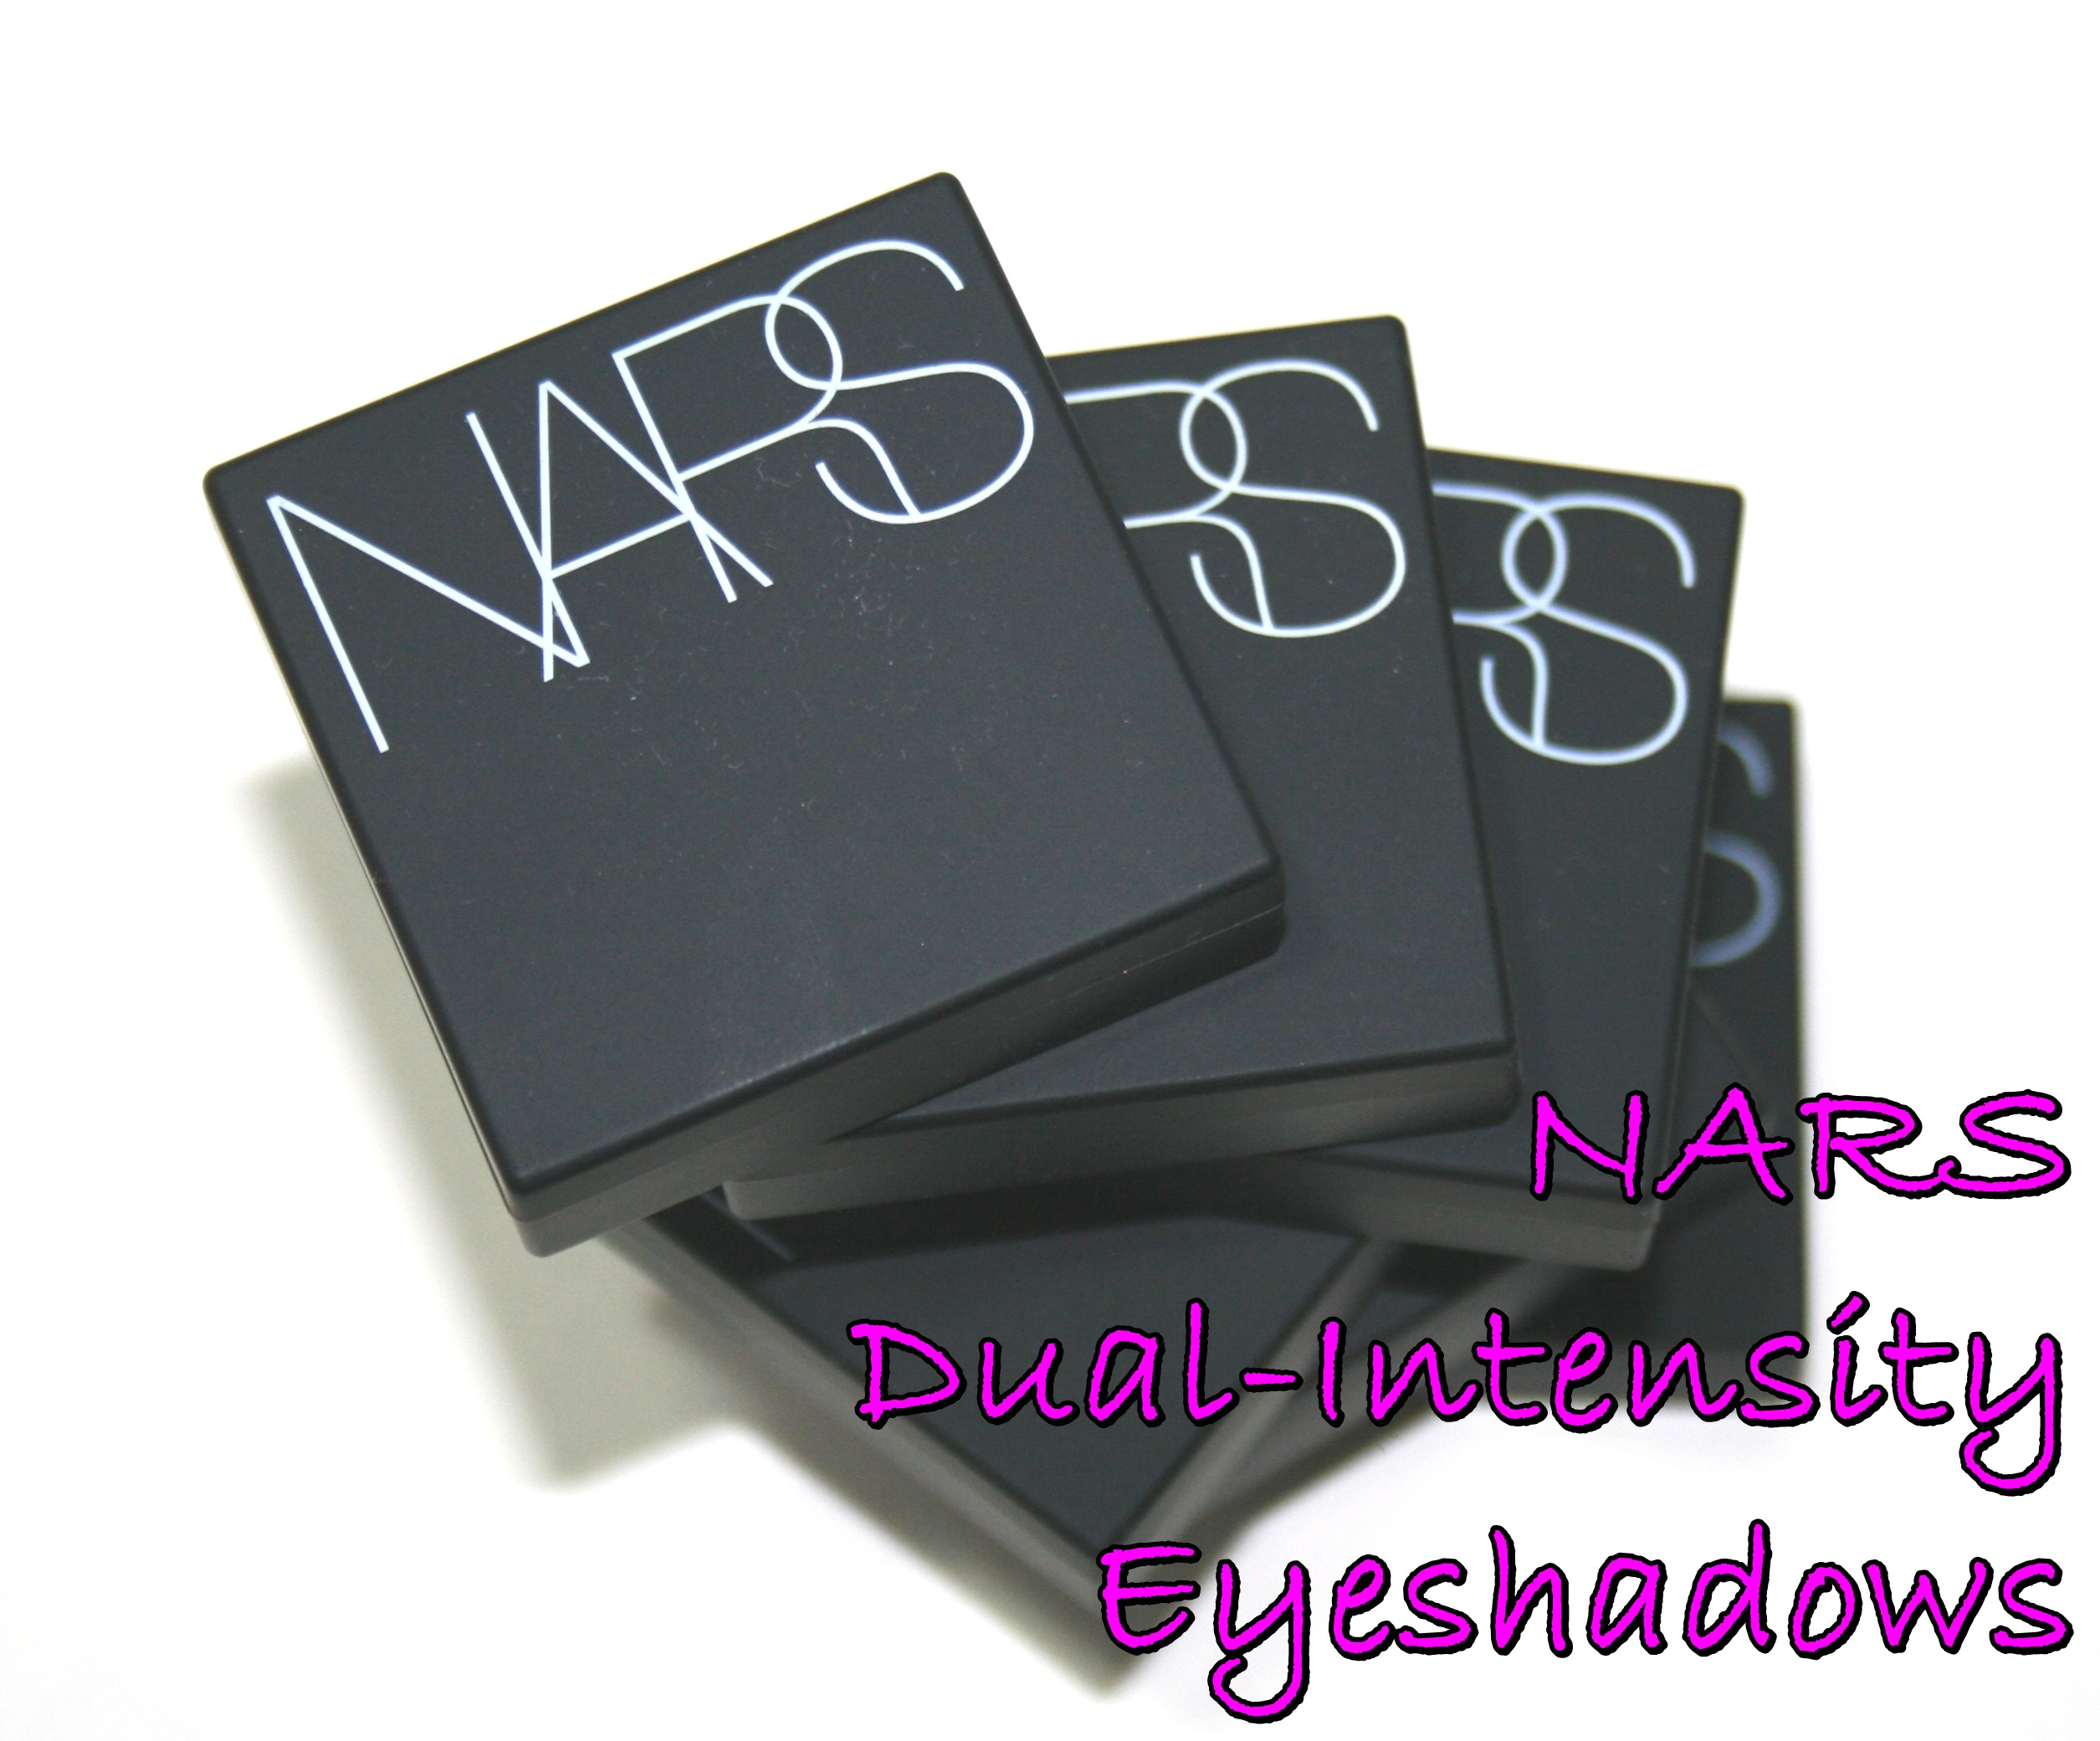 NARS Dual Intensity Eye Shadows - Review and Swatches